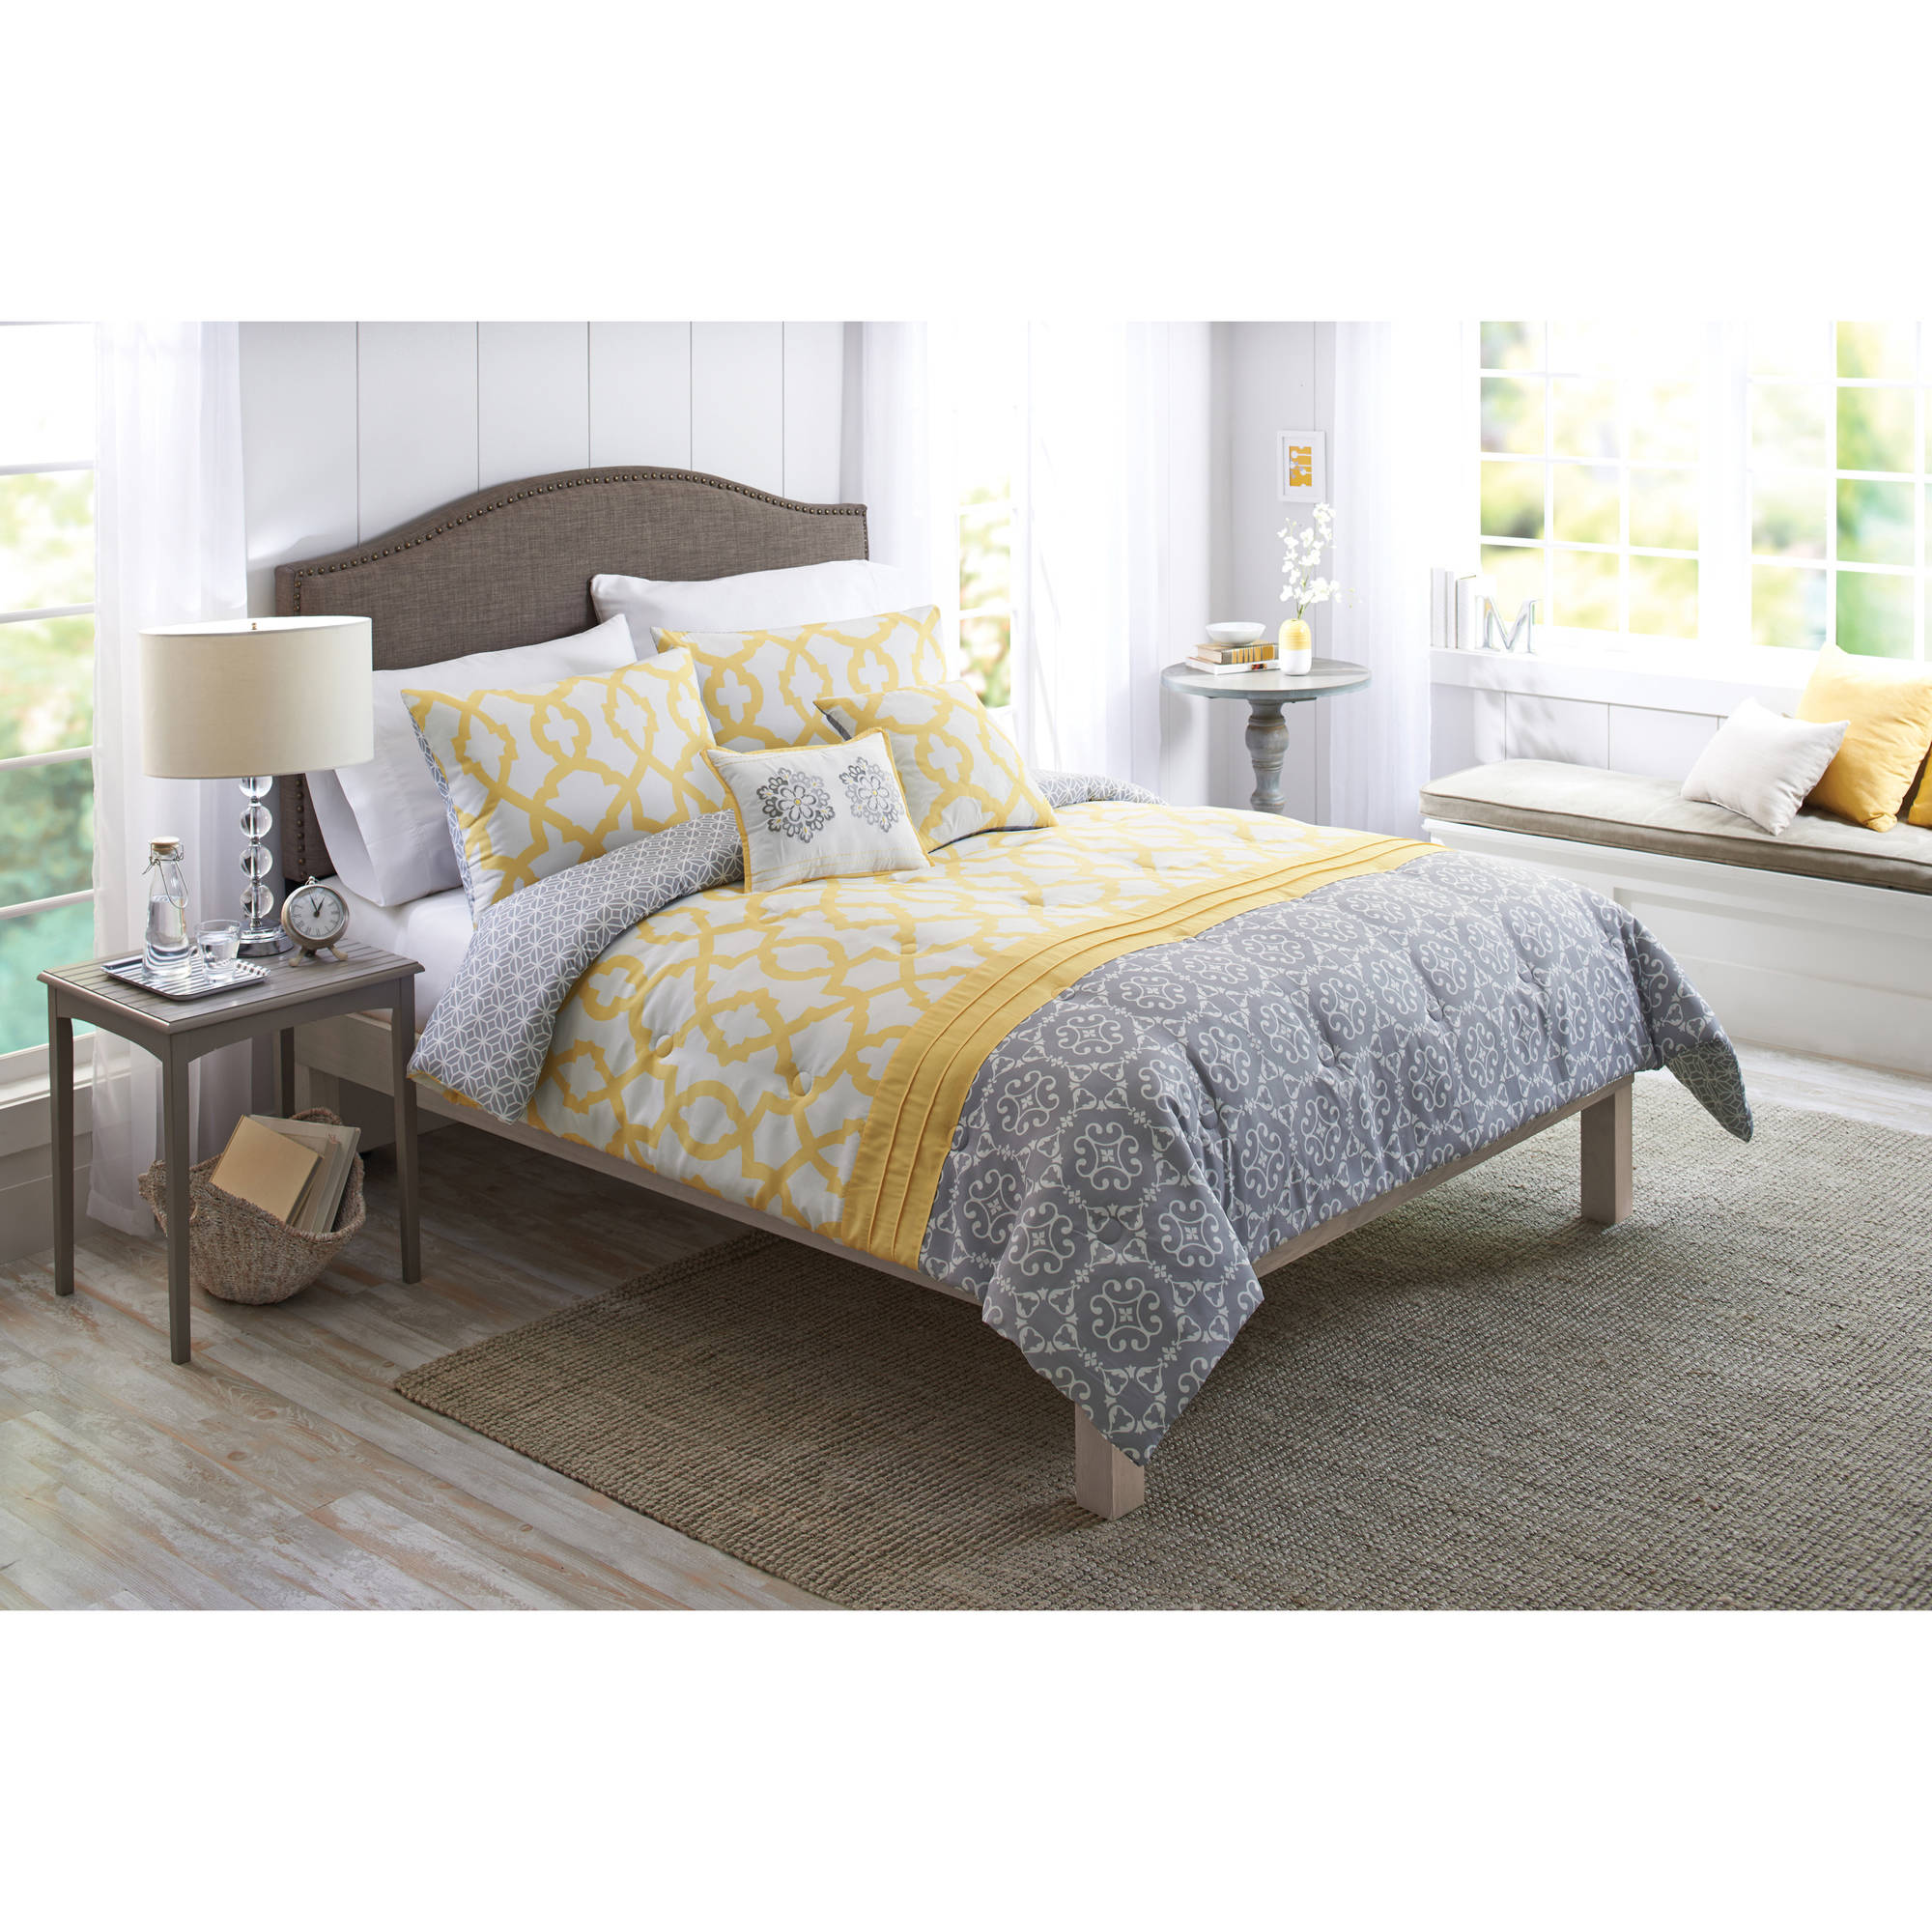 Better Homes & Gardens Full Medallion Yellow & Gray Comforter Set, 5 Piece